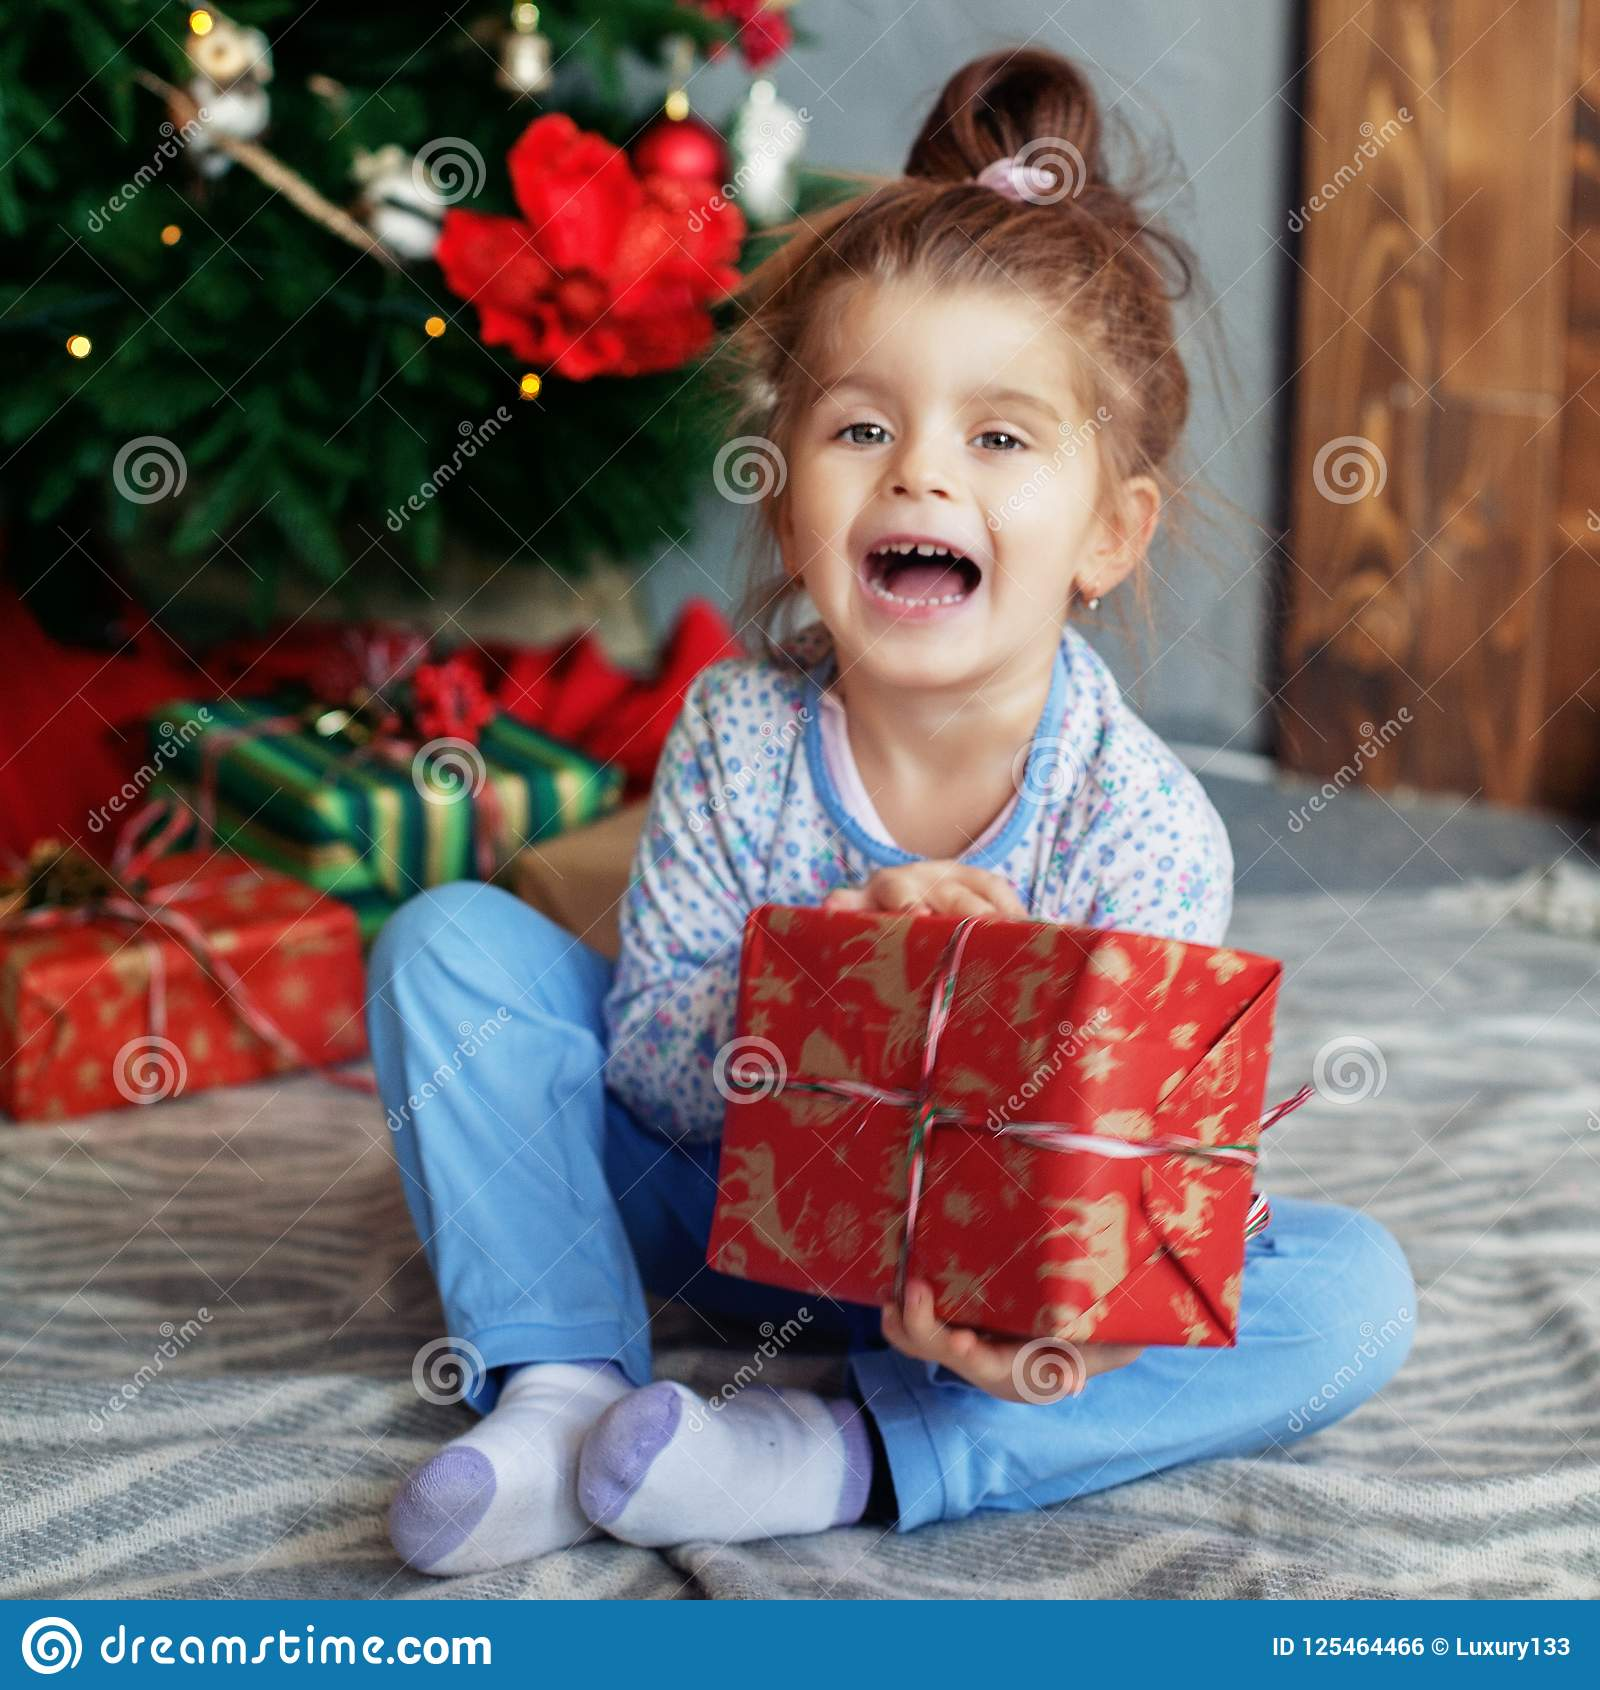 Cheerful Kid Opening Gifts. The Concept Of Christmas And New Year ...